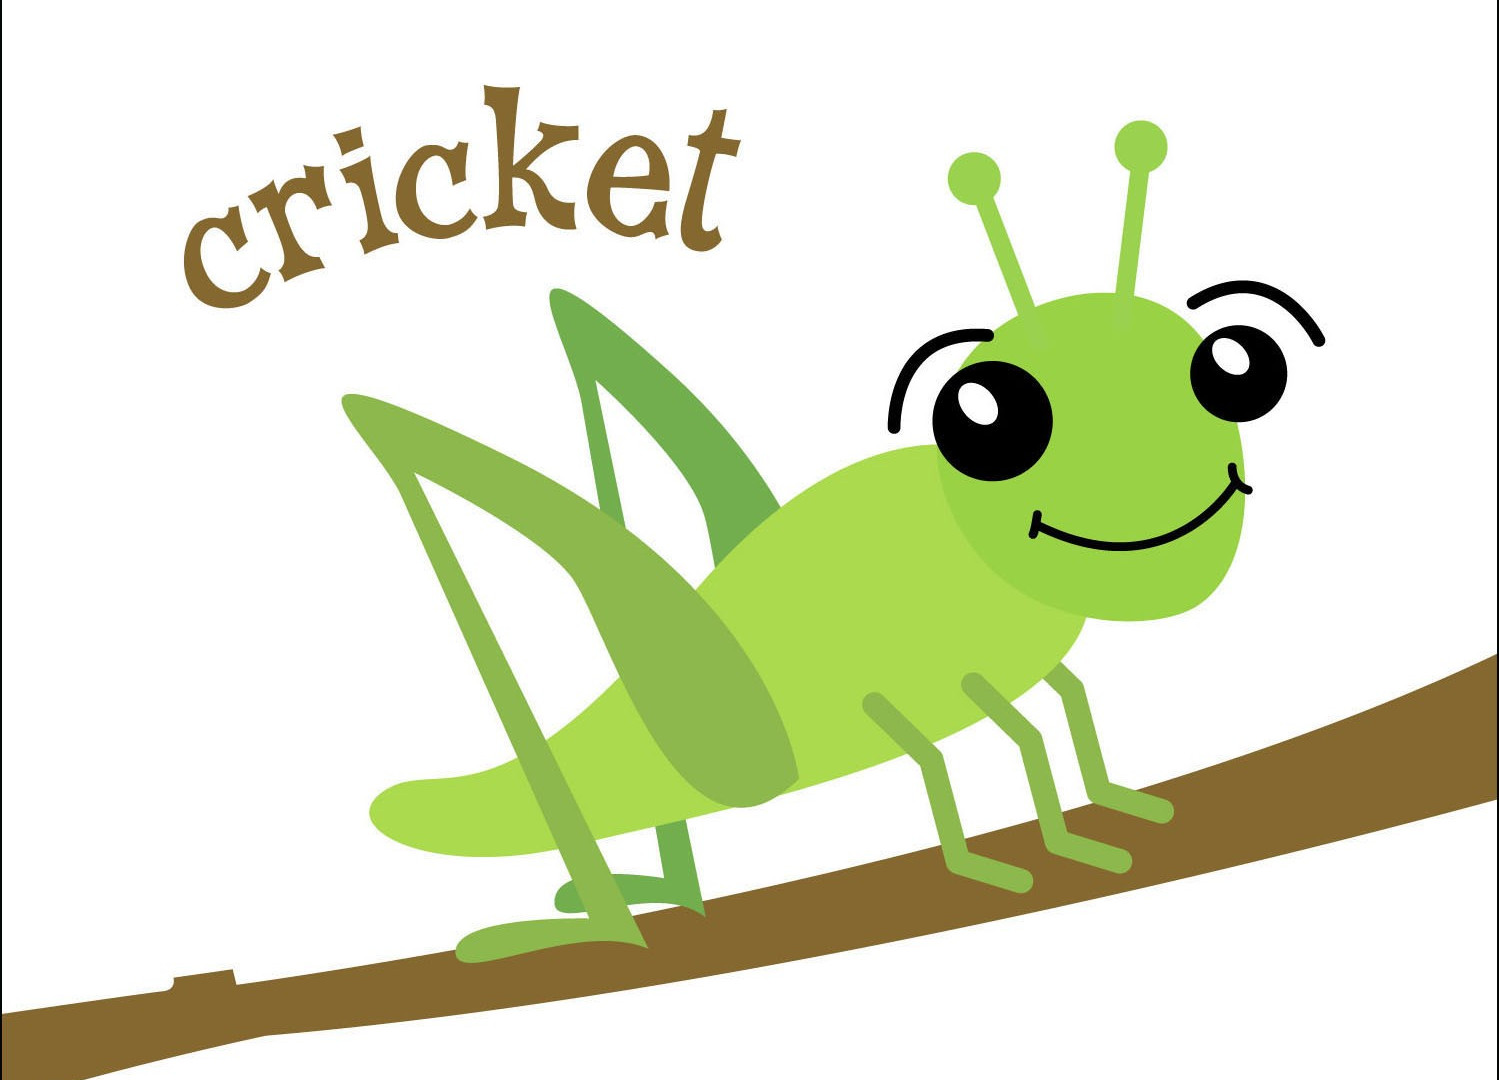 noisy cricket graphic.jpg